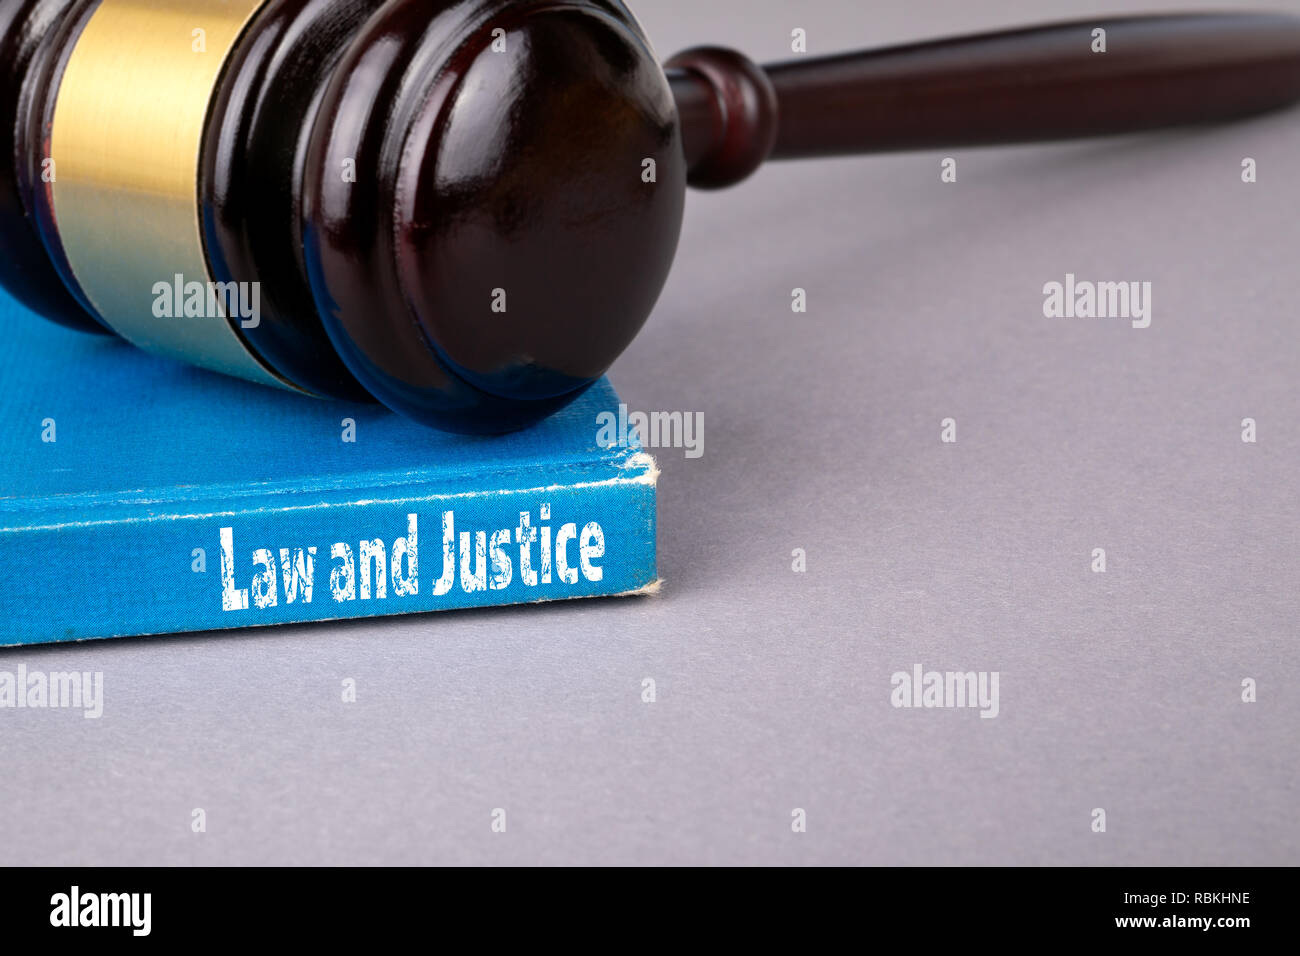 Law and justice concept. blue book on a gray office table - Stock Image